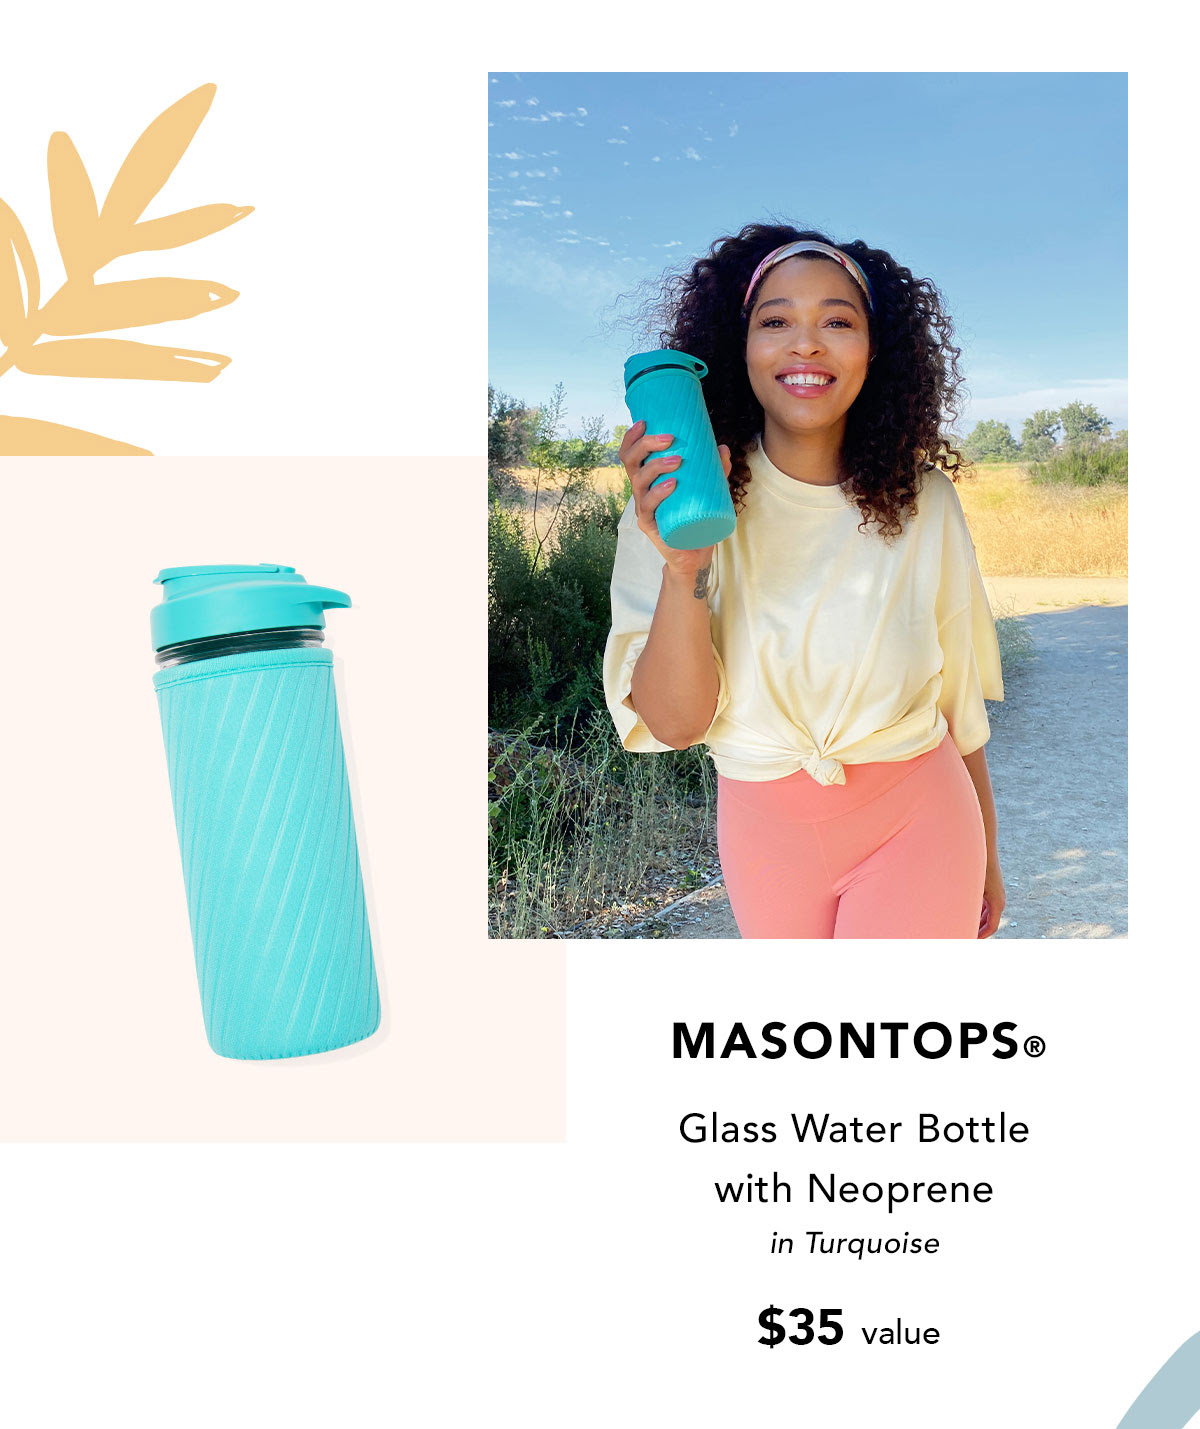 Masontops® Glass Water Bottle with Neoprene in Turquoise $35 value